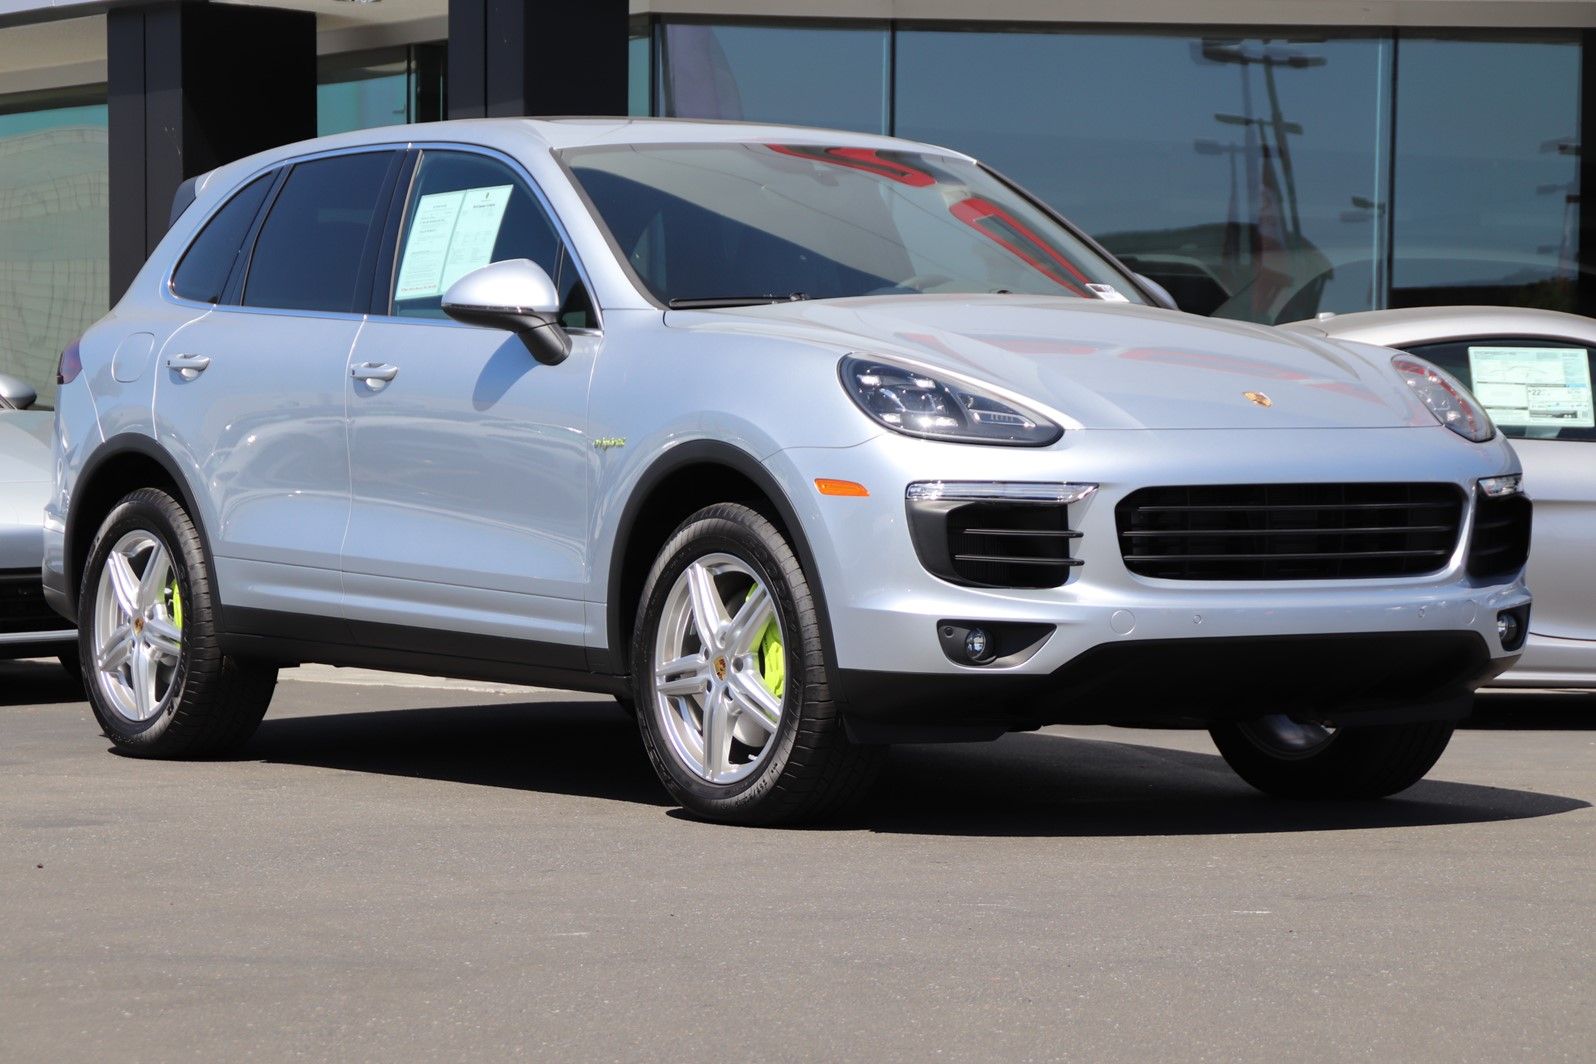 New 2018 Porsche Cayenne S E-Hybrid AWD (DEMO VEHICLE)